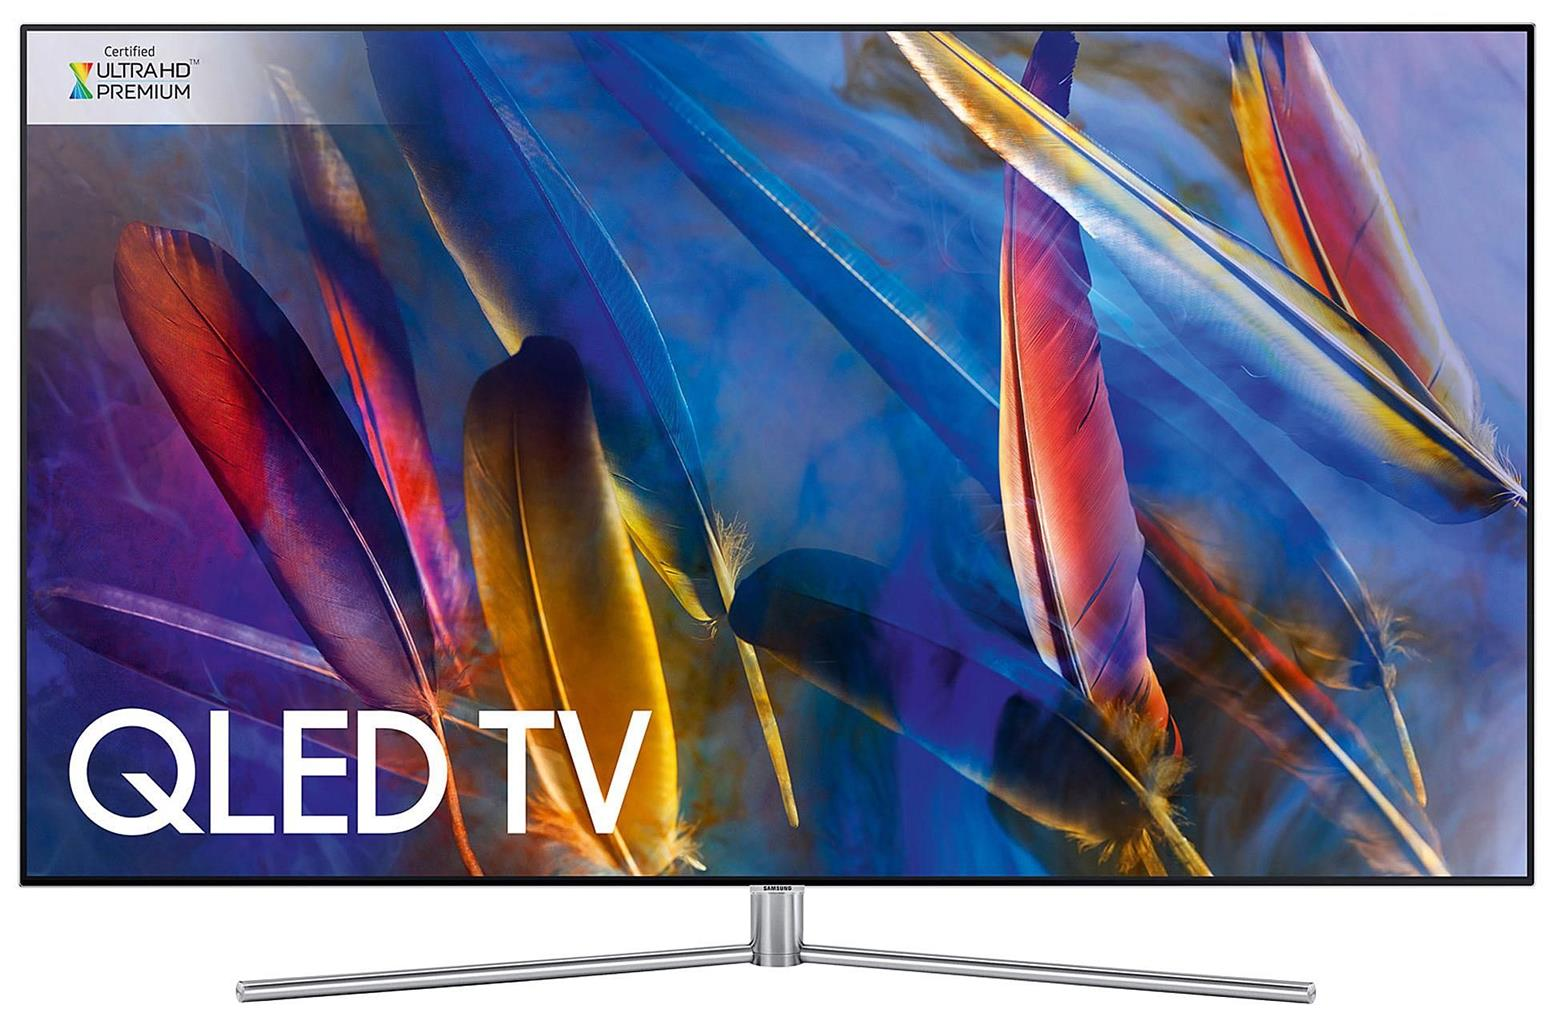 Discount sales on brand new television sets